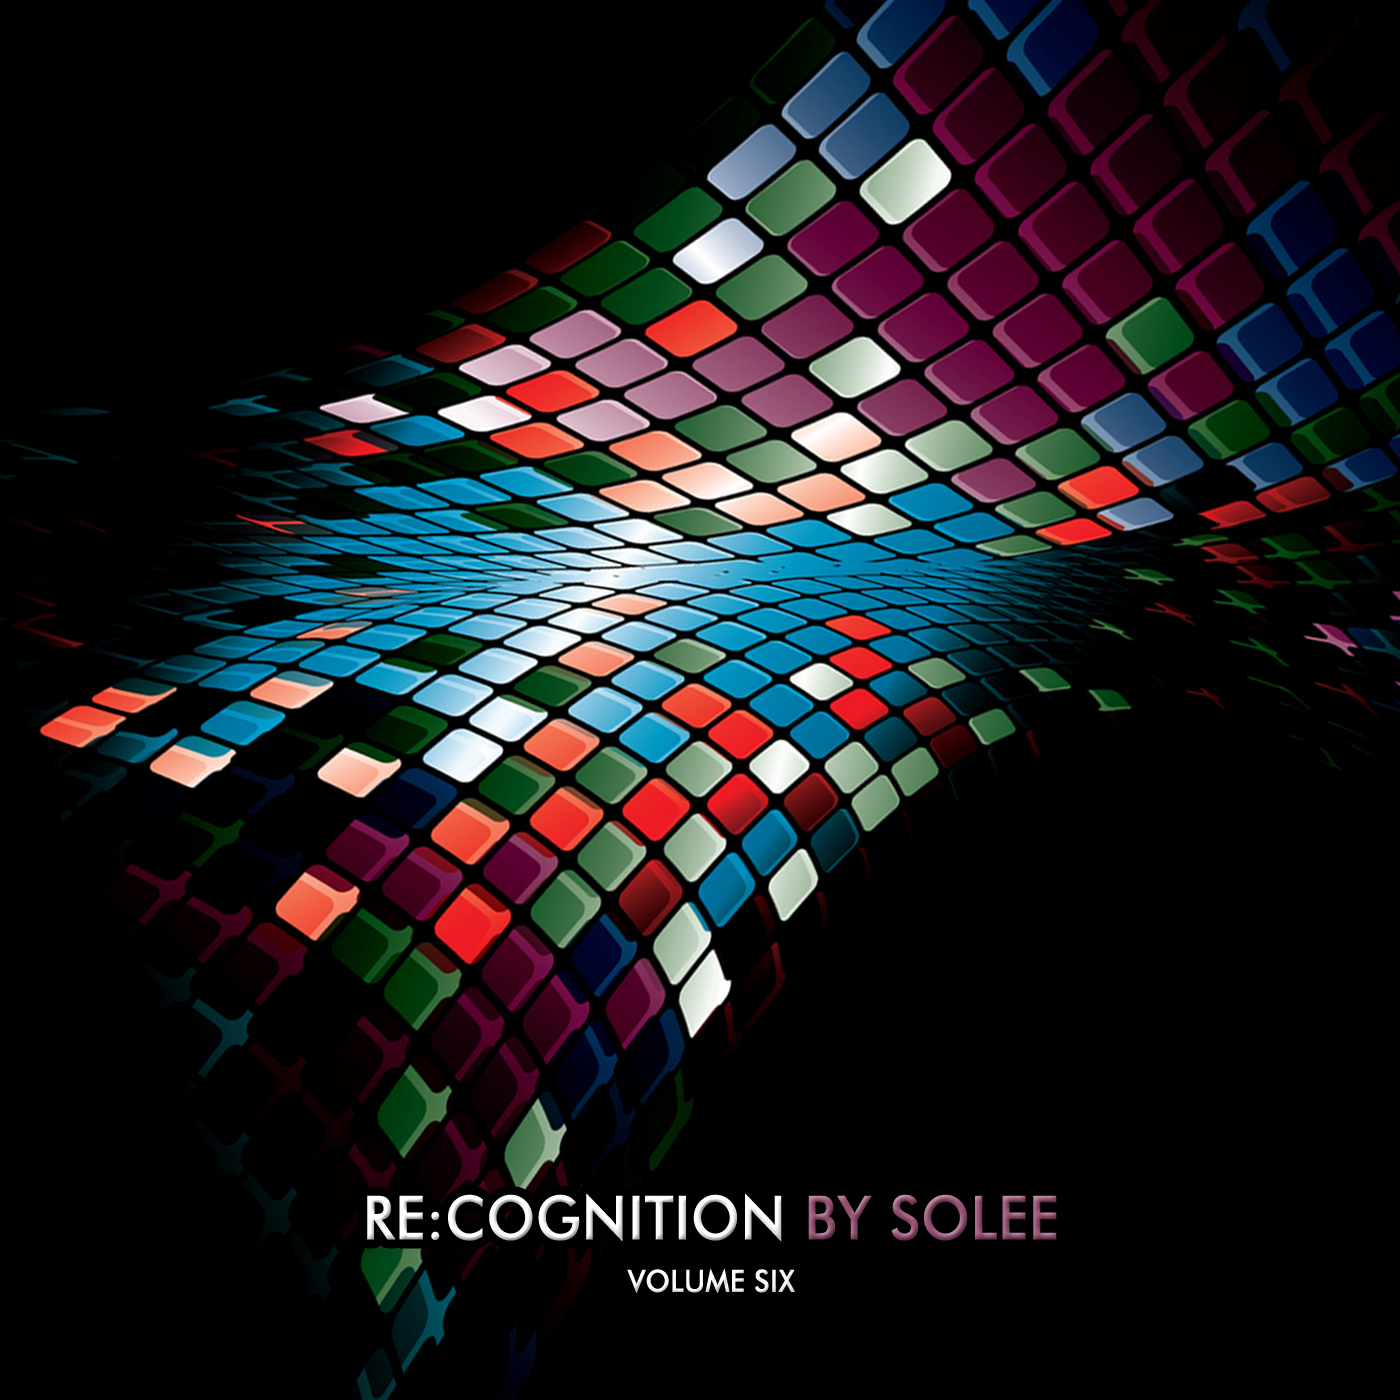 Mijk van Dijk – The City Rain (Re:Cognition Vol.6 Compilation)